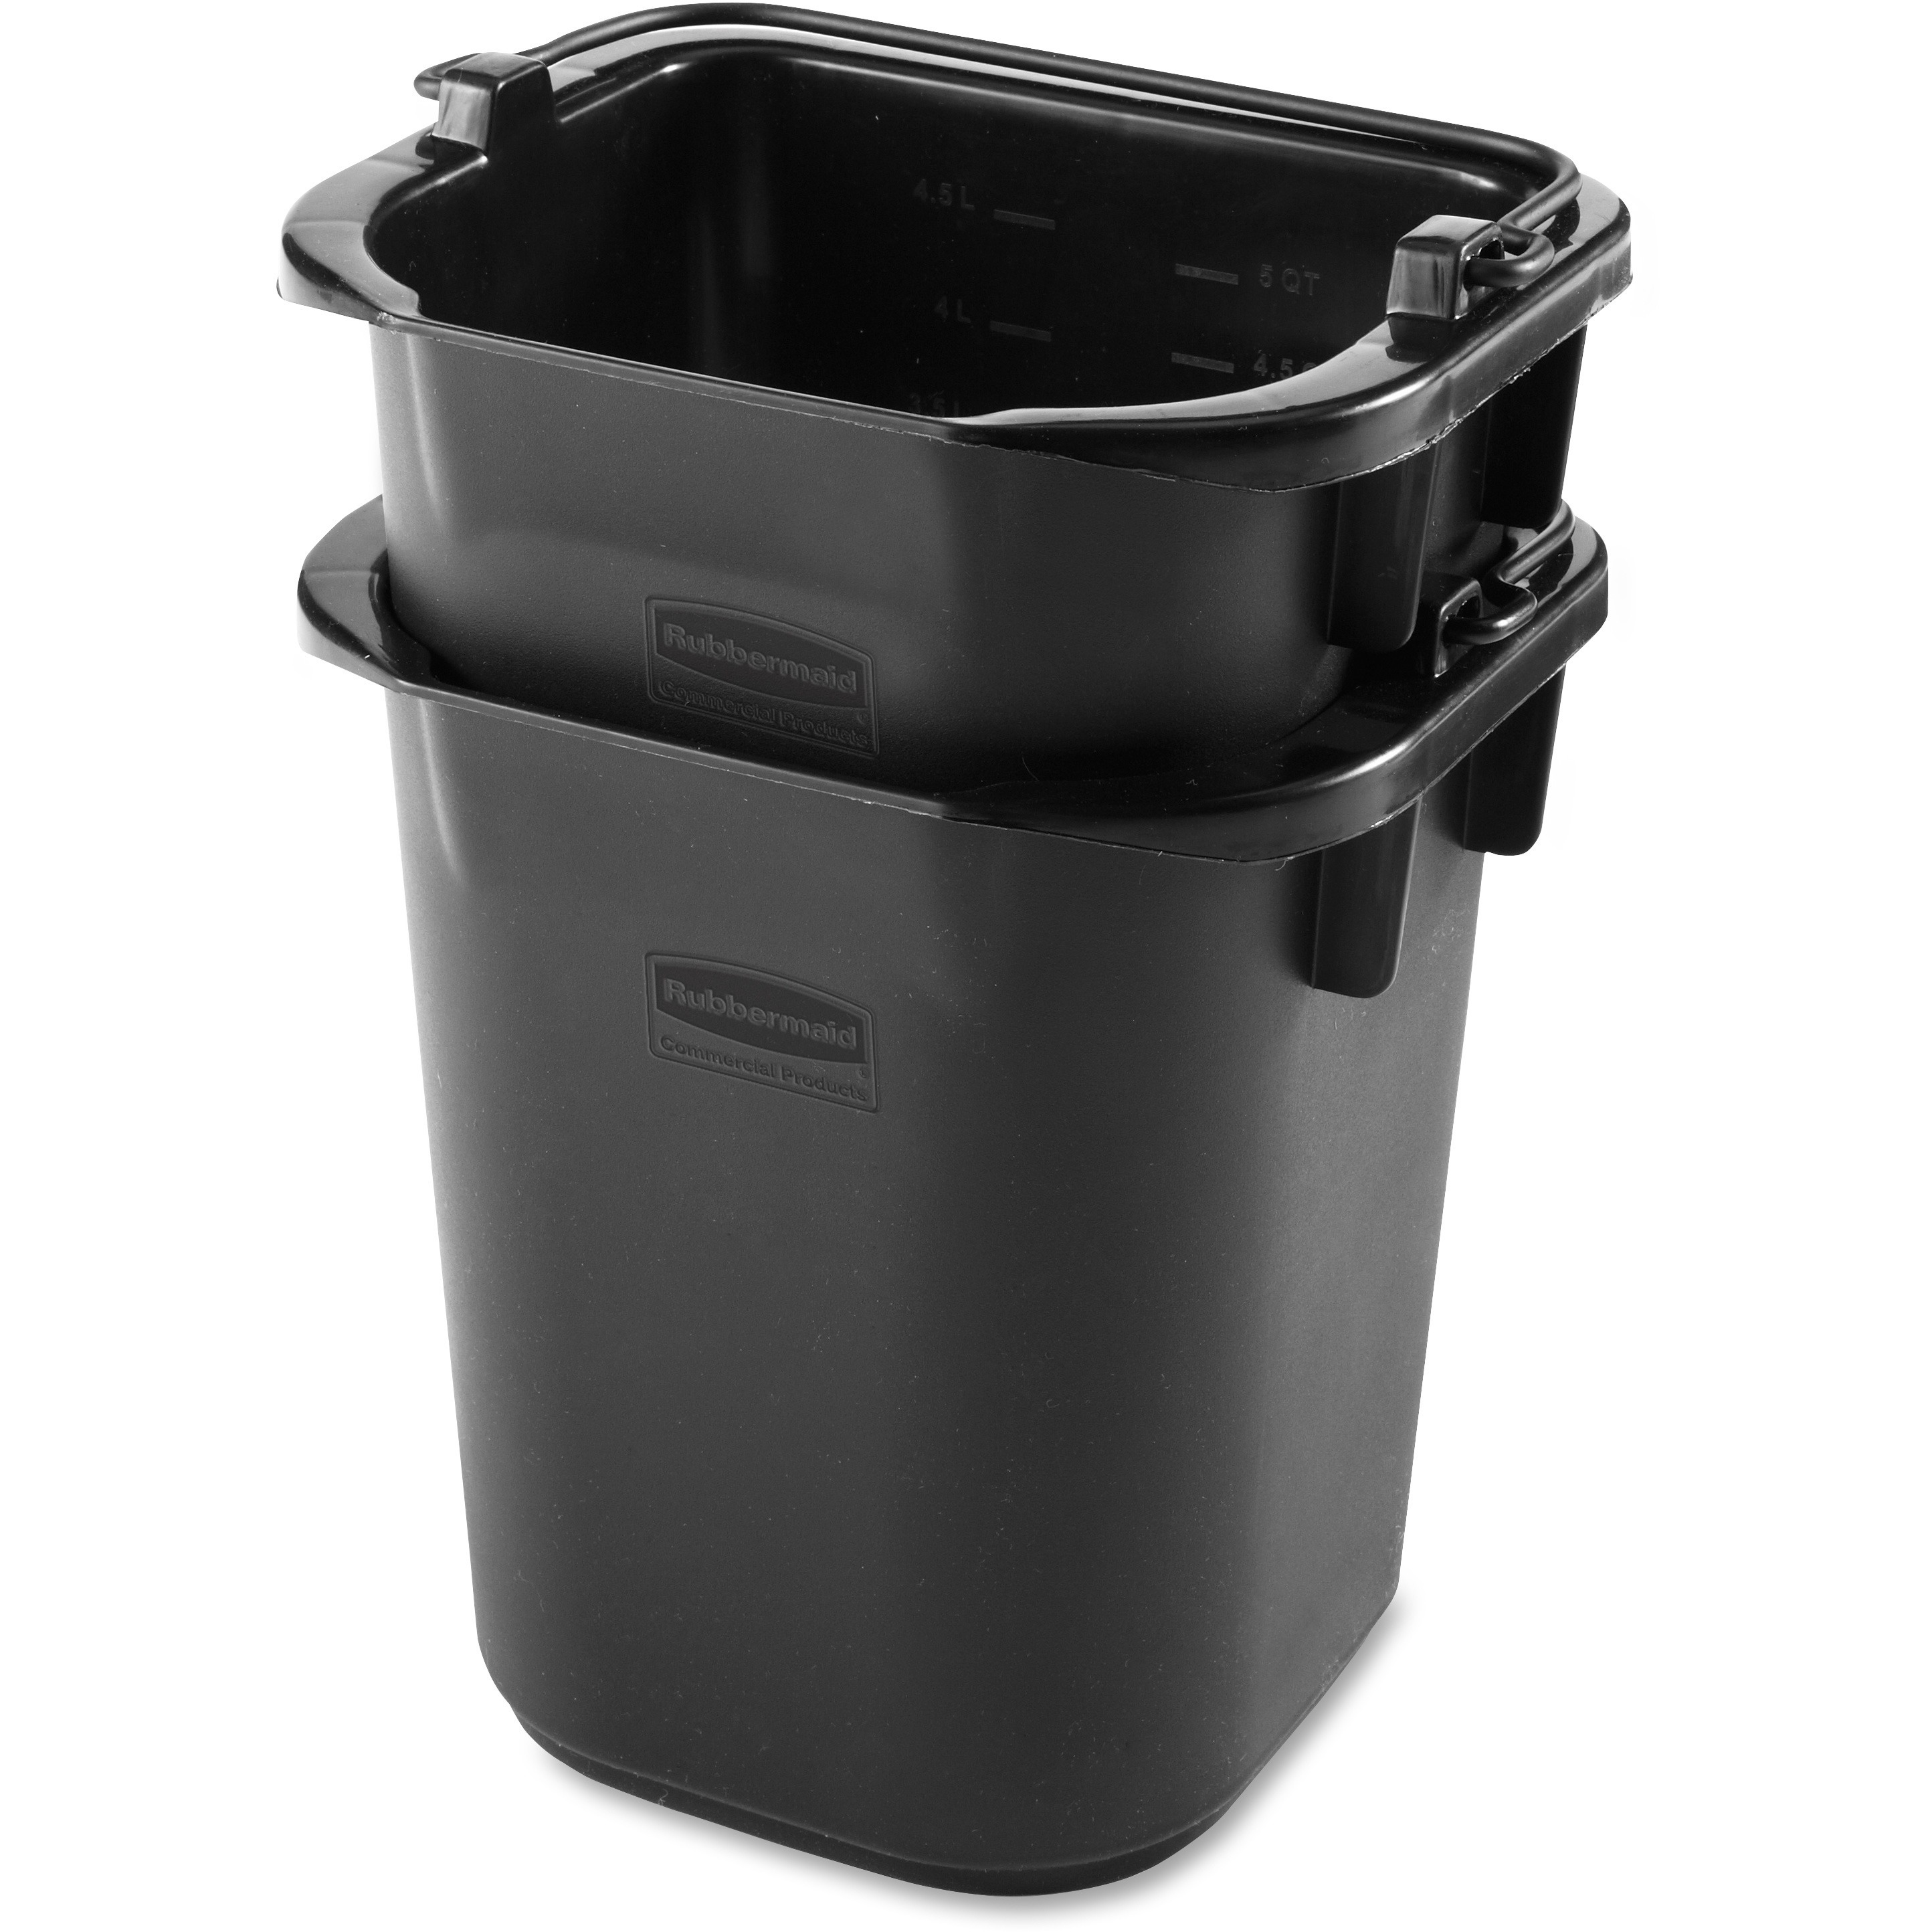 Rubbermaid Commercial, RCP1857378, Executive 5-quart Heavy-duty Pail, 1 Each, Black